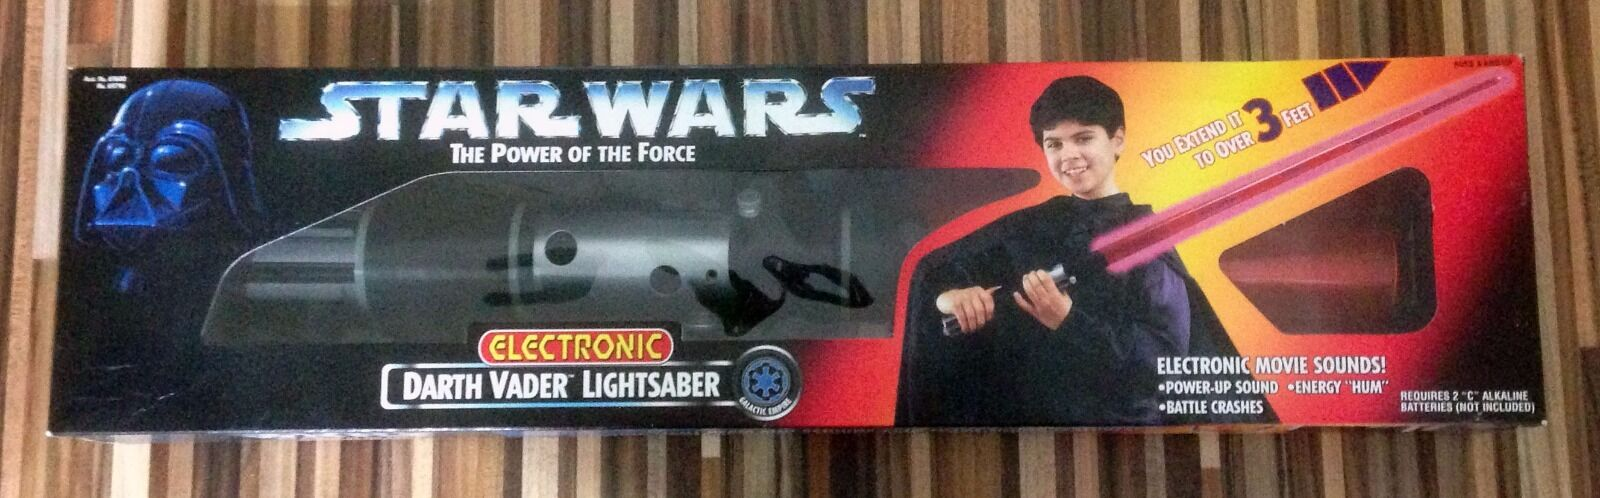 Darth Electronic Vader Electronic Darth Lightsaber 1996 feda6d